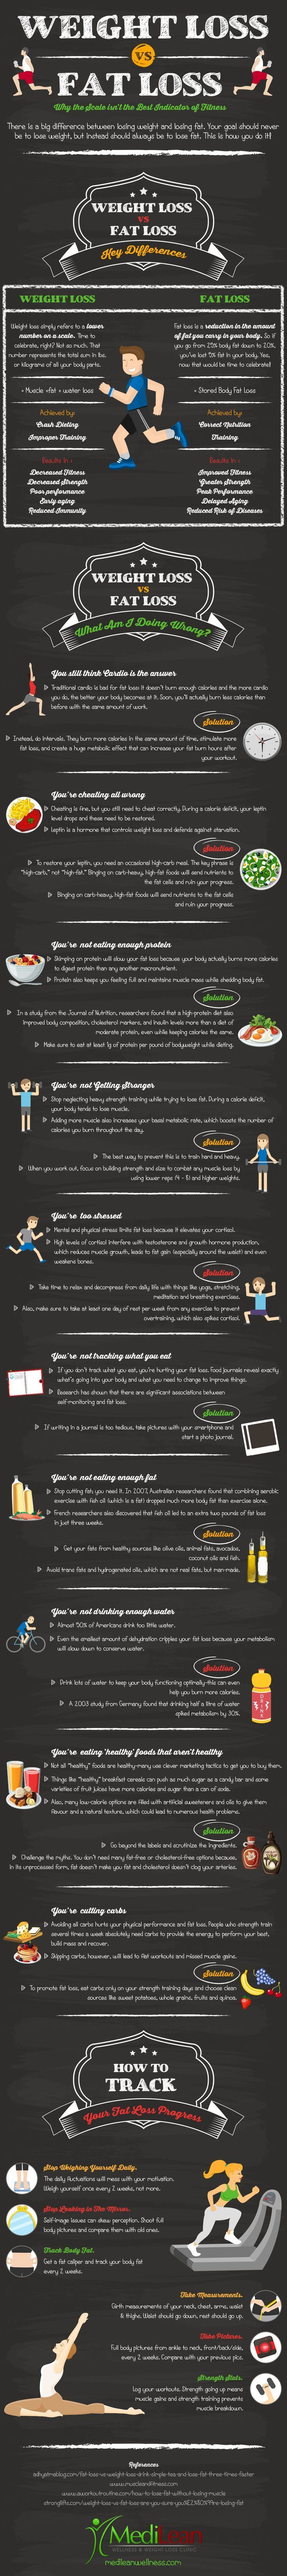 Weight Loss vs Fat Loss: Why Your Scale Isn't the Best Indicator of Fitness – Infographic